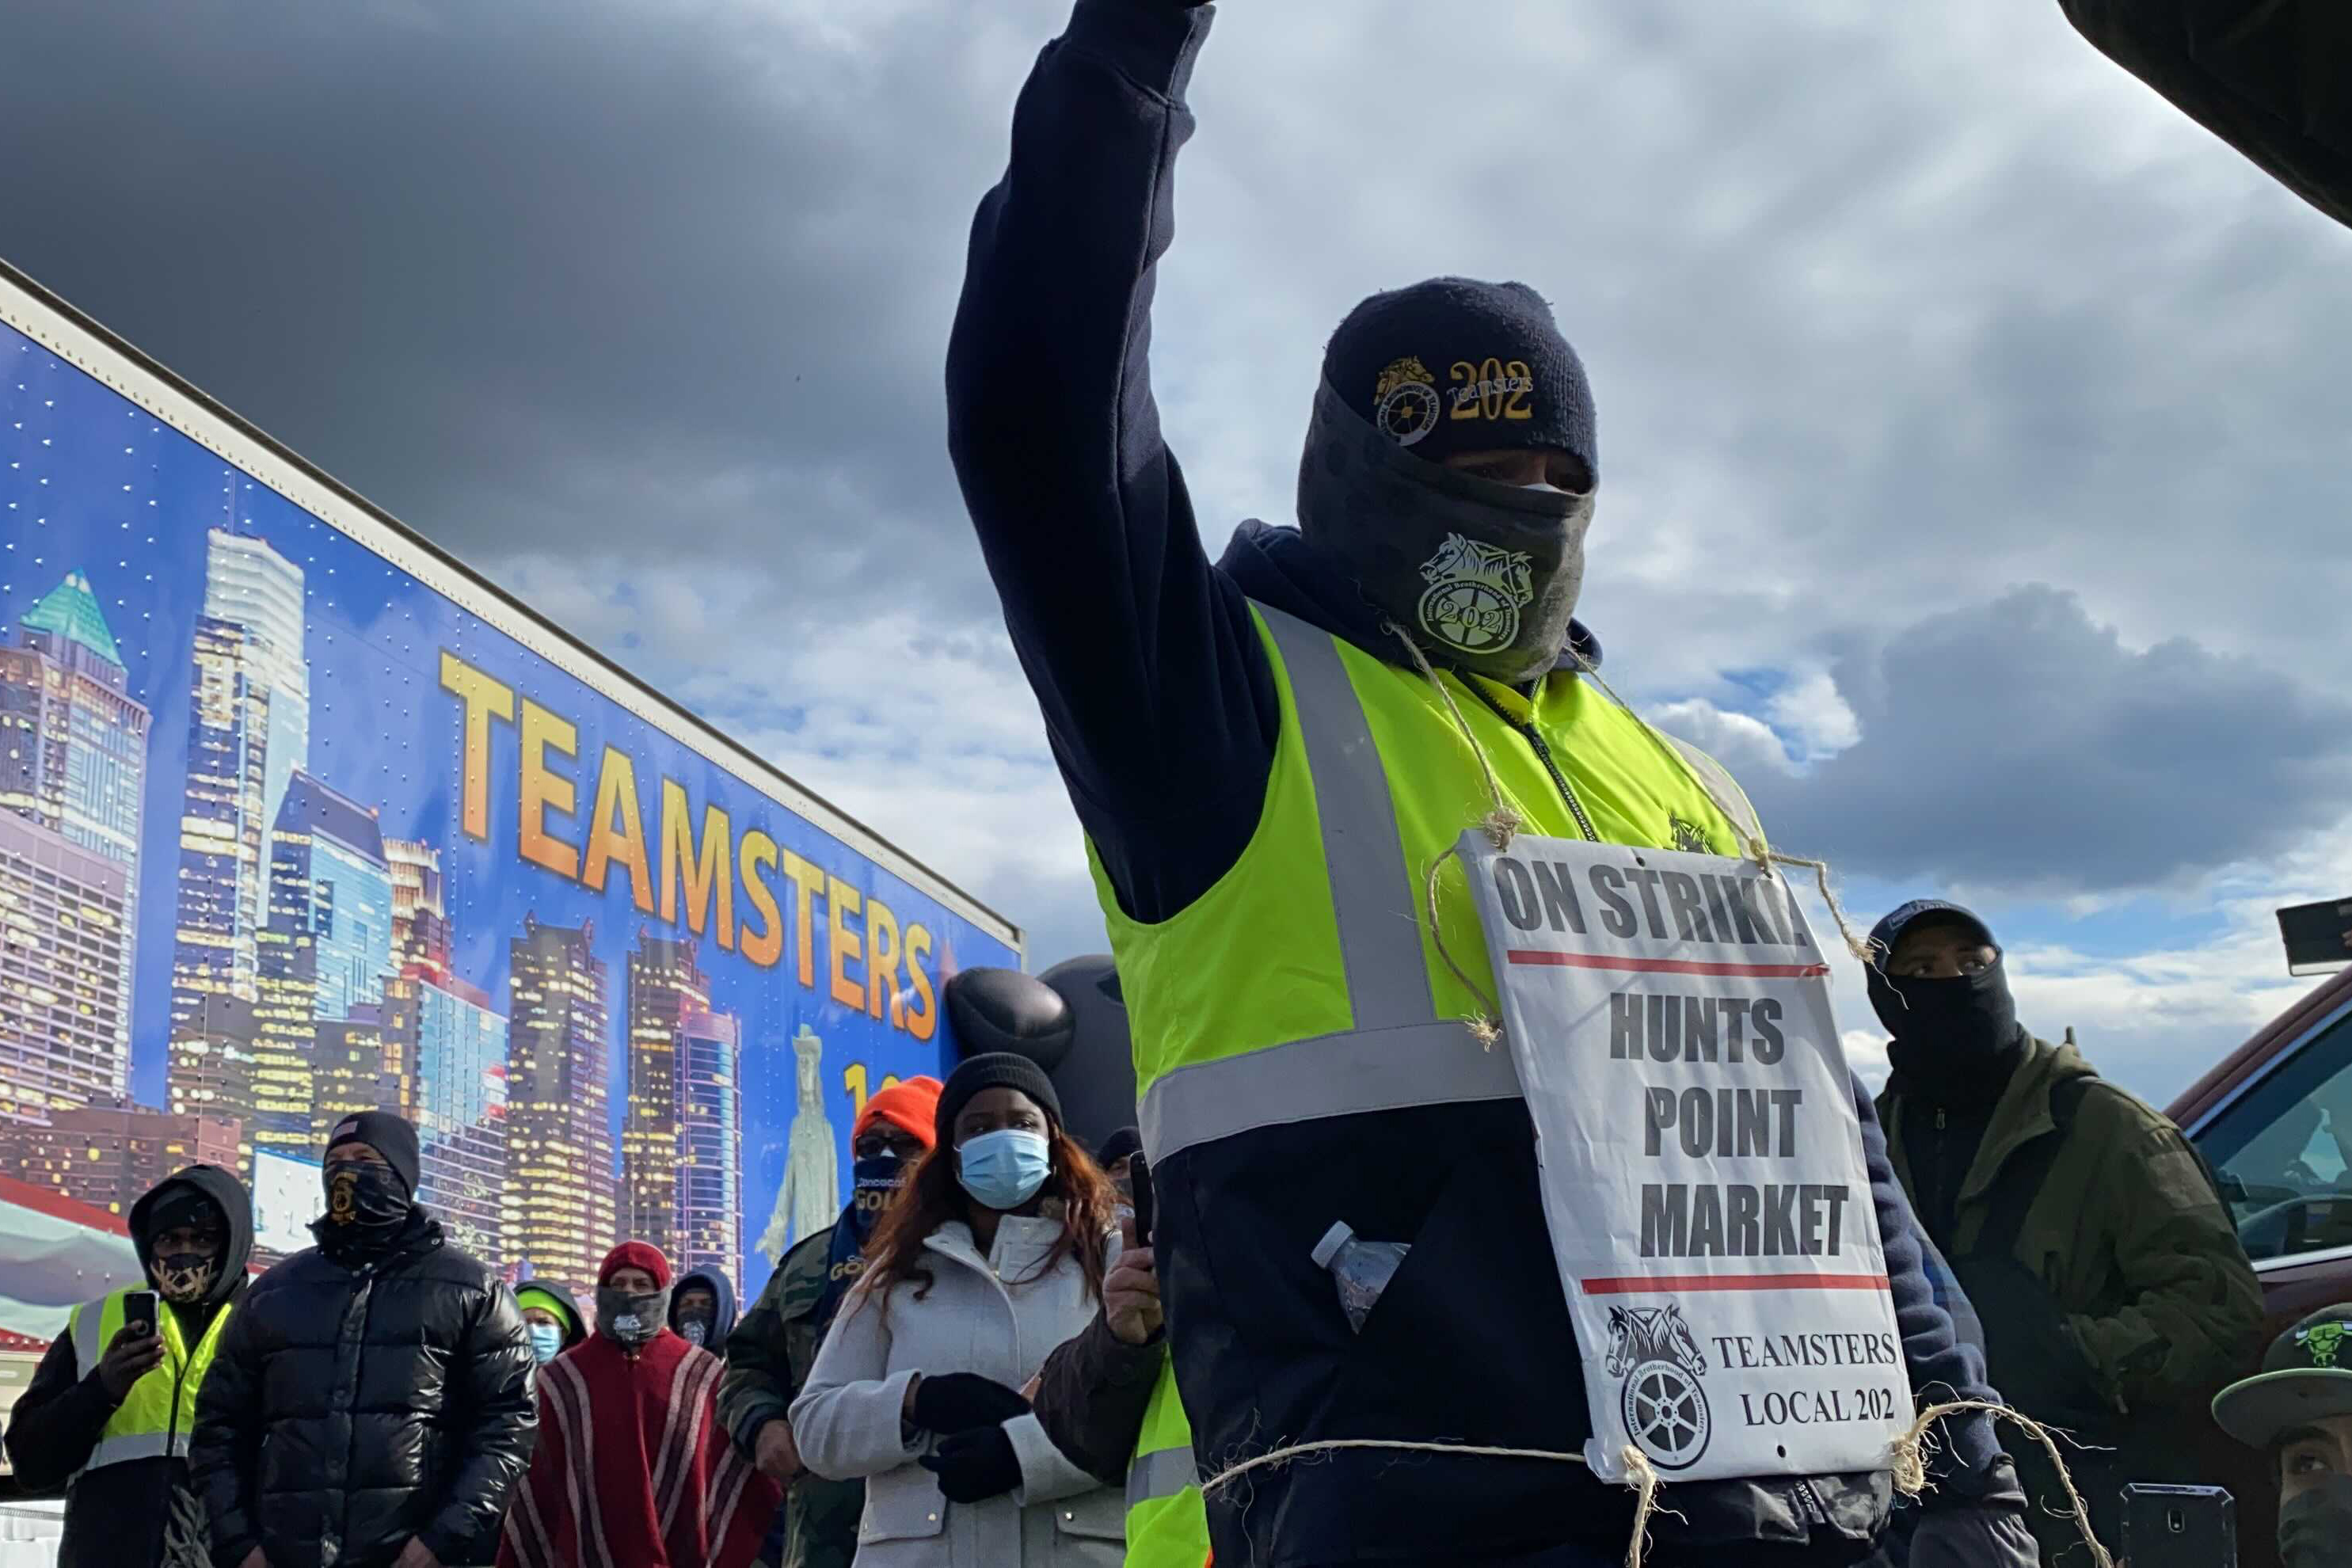 A Hunts Point Market worker takes part in a strike Tuesday morning, Jan. 19, 2021.